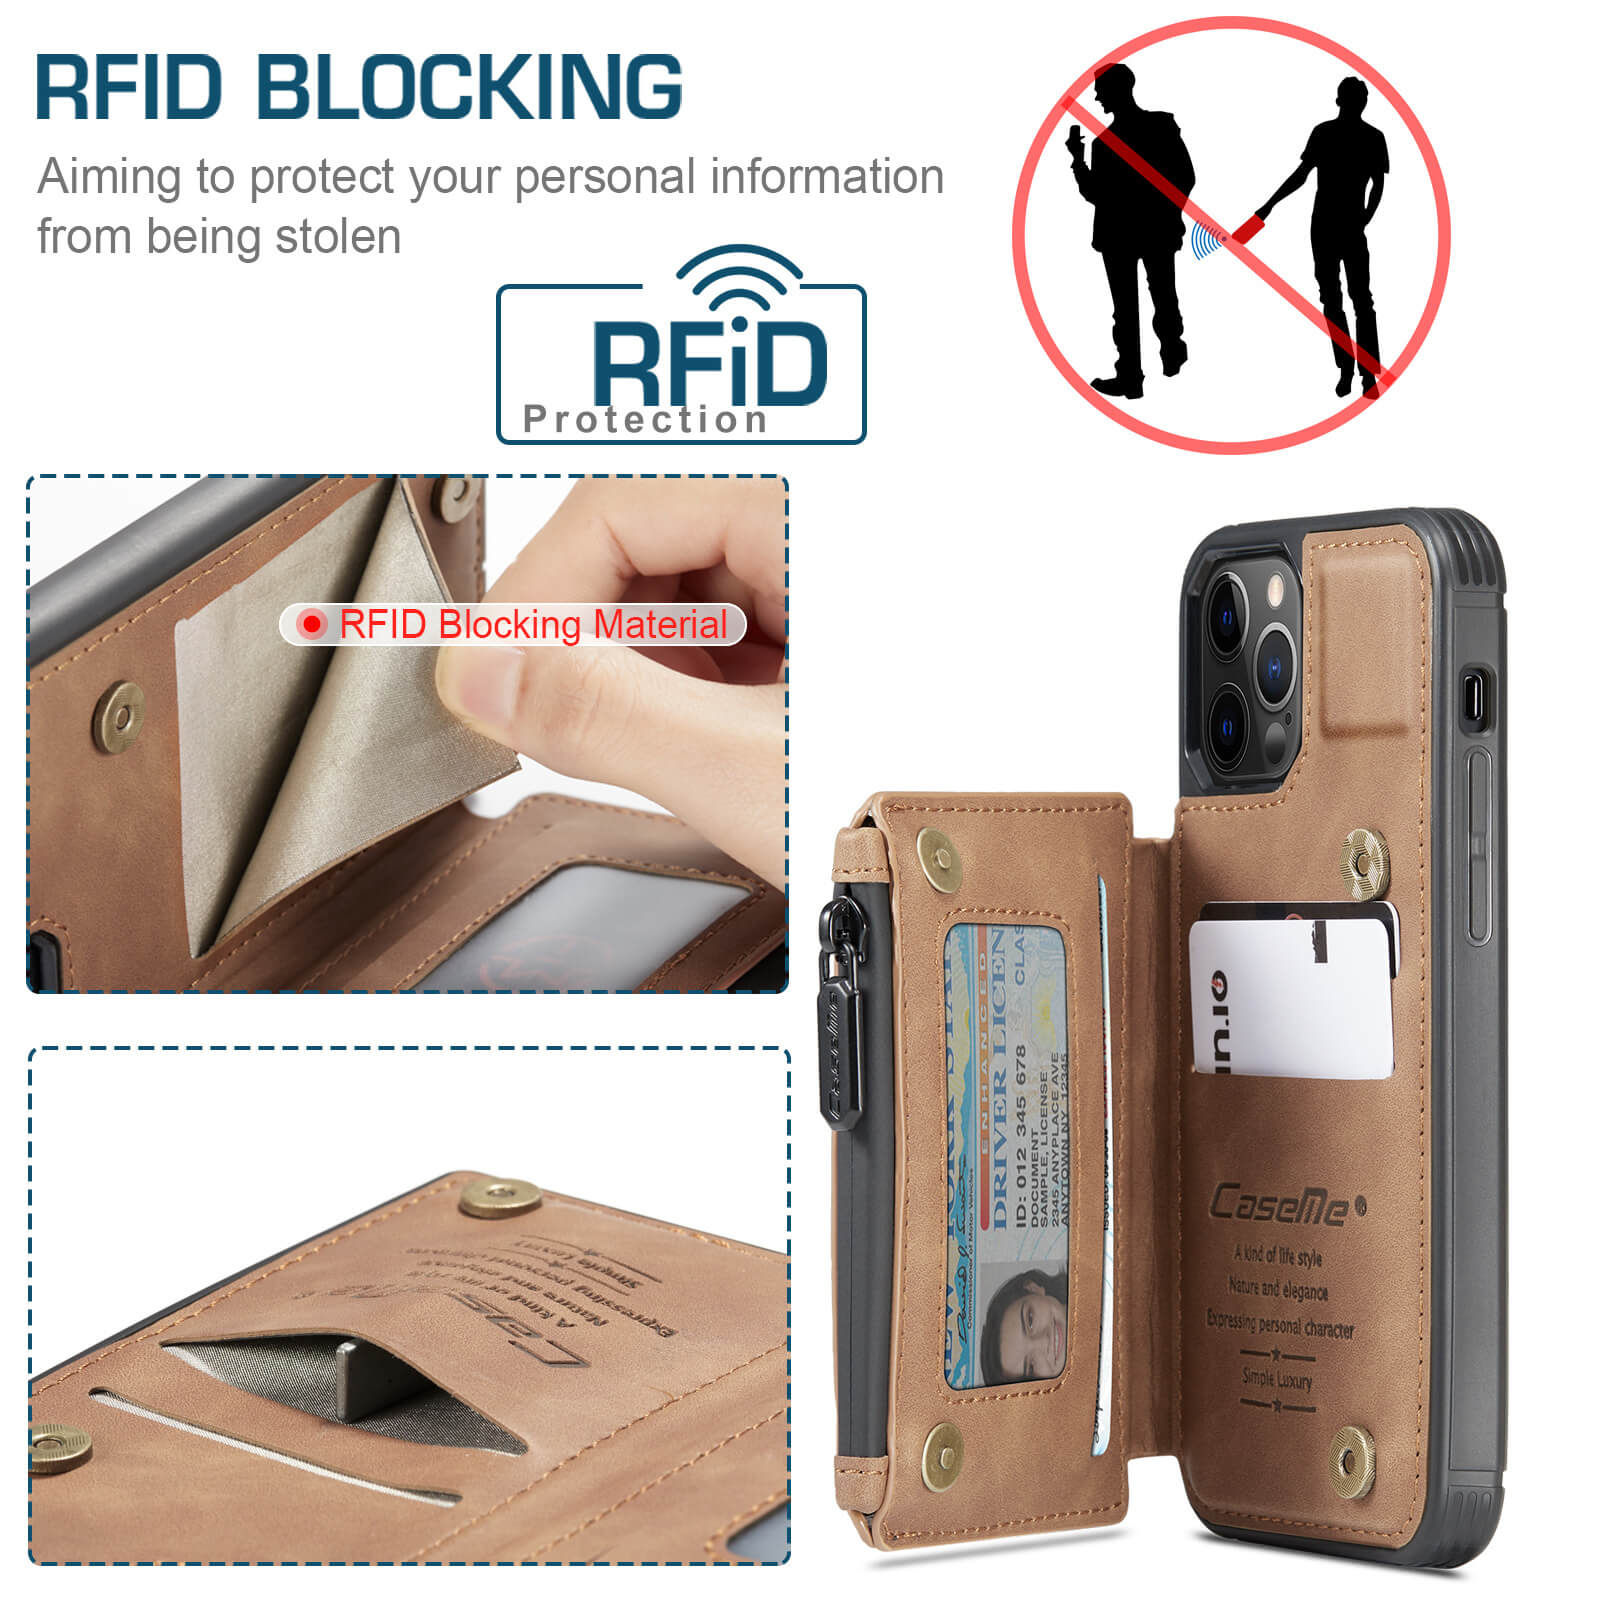 iphone protective leather case with RFID card holder wallet case- product display-rfid-popmoca